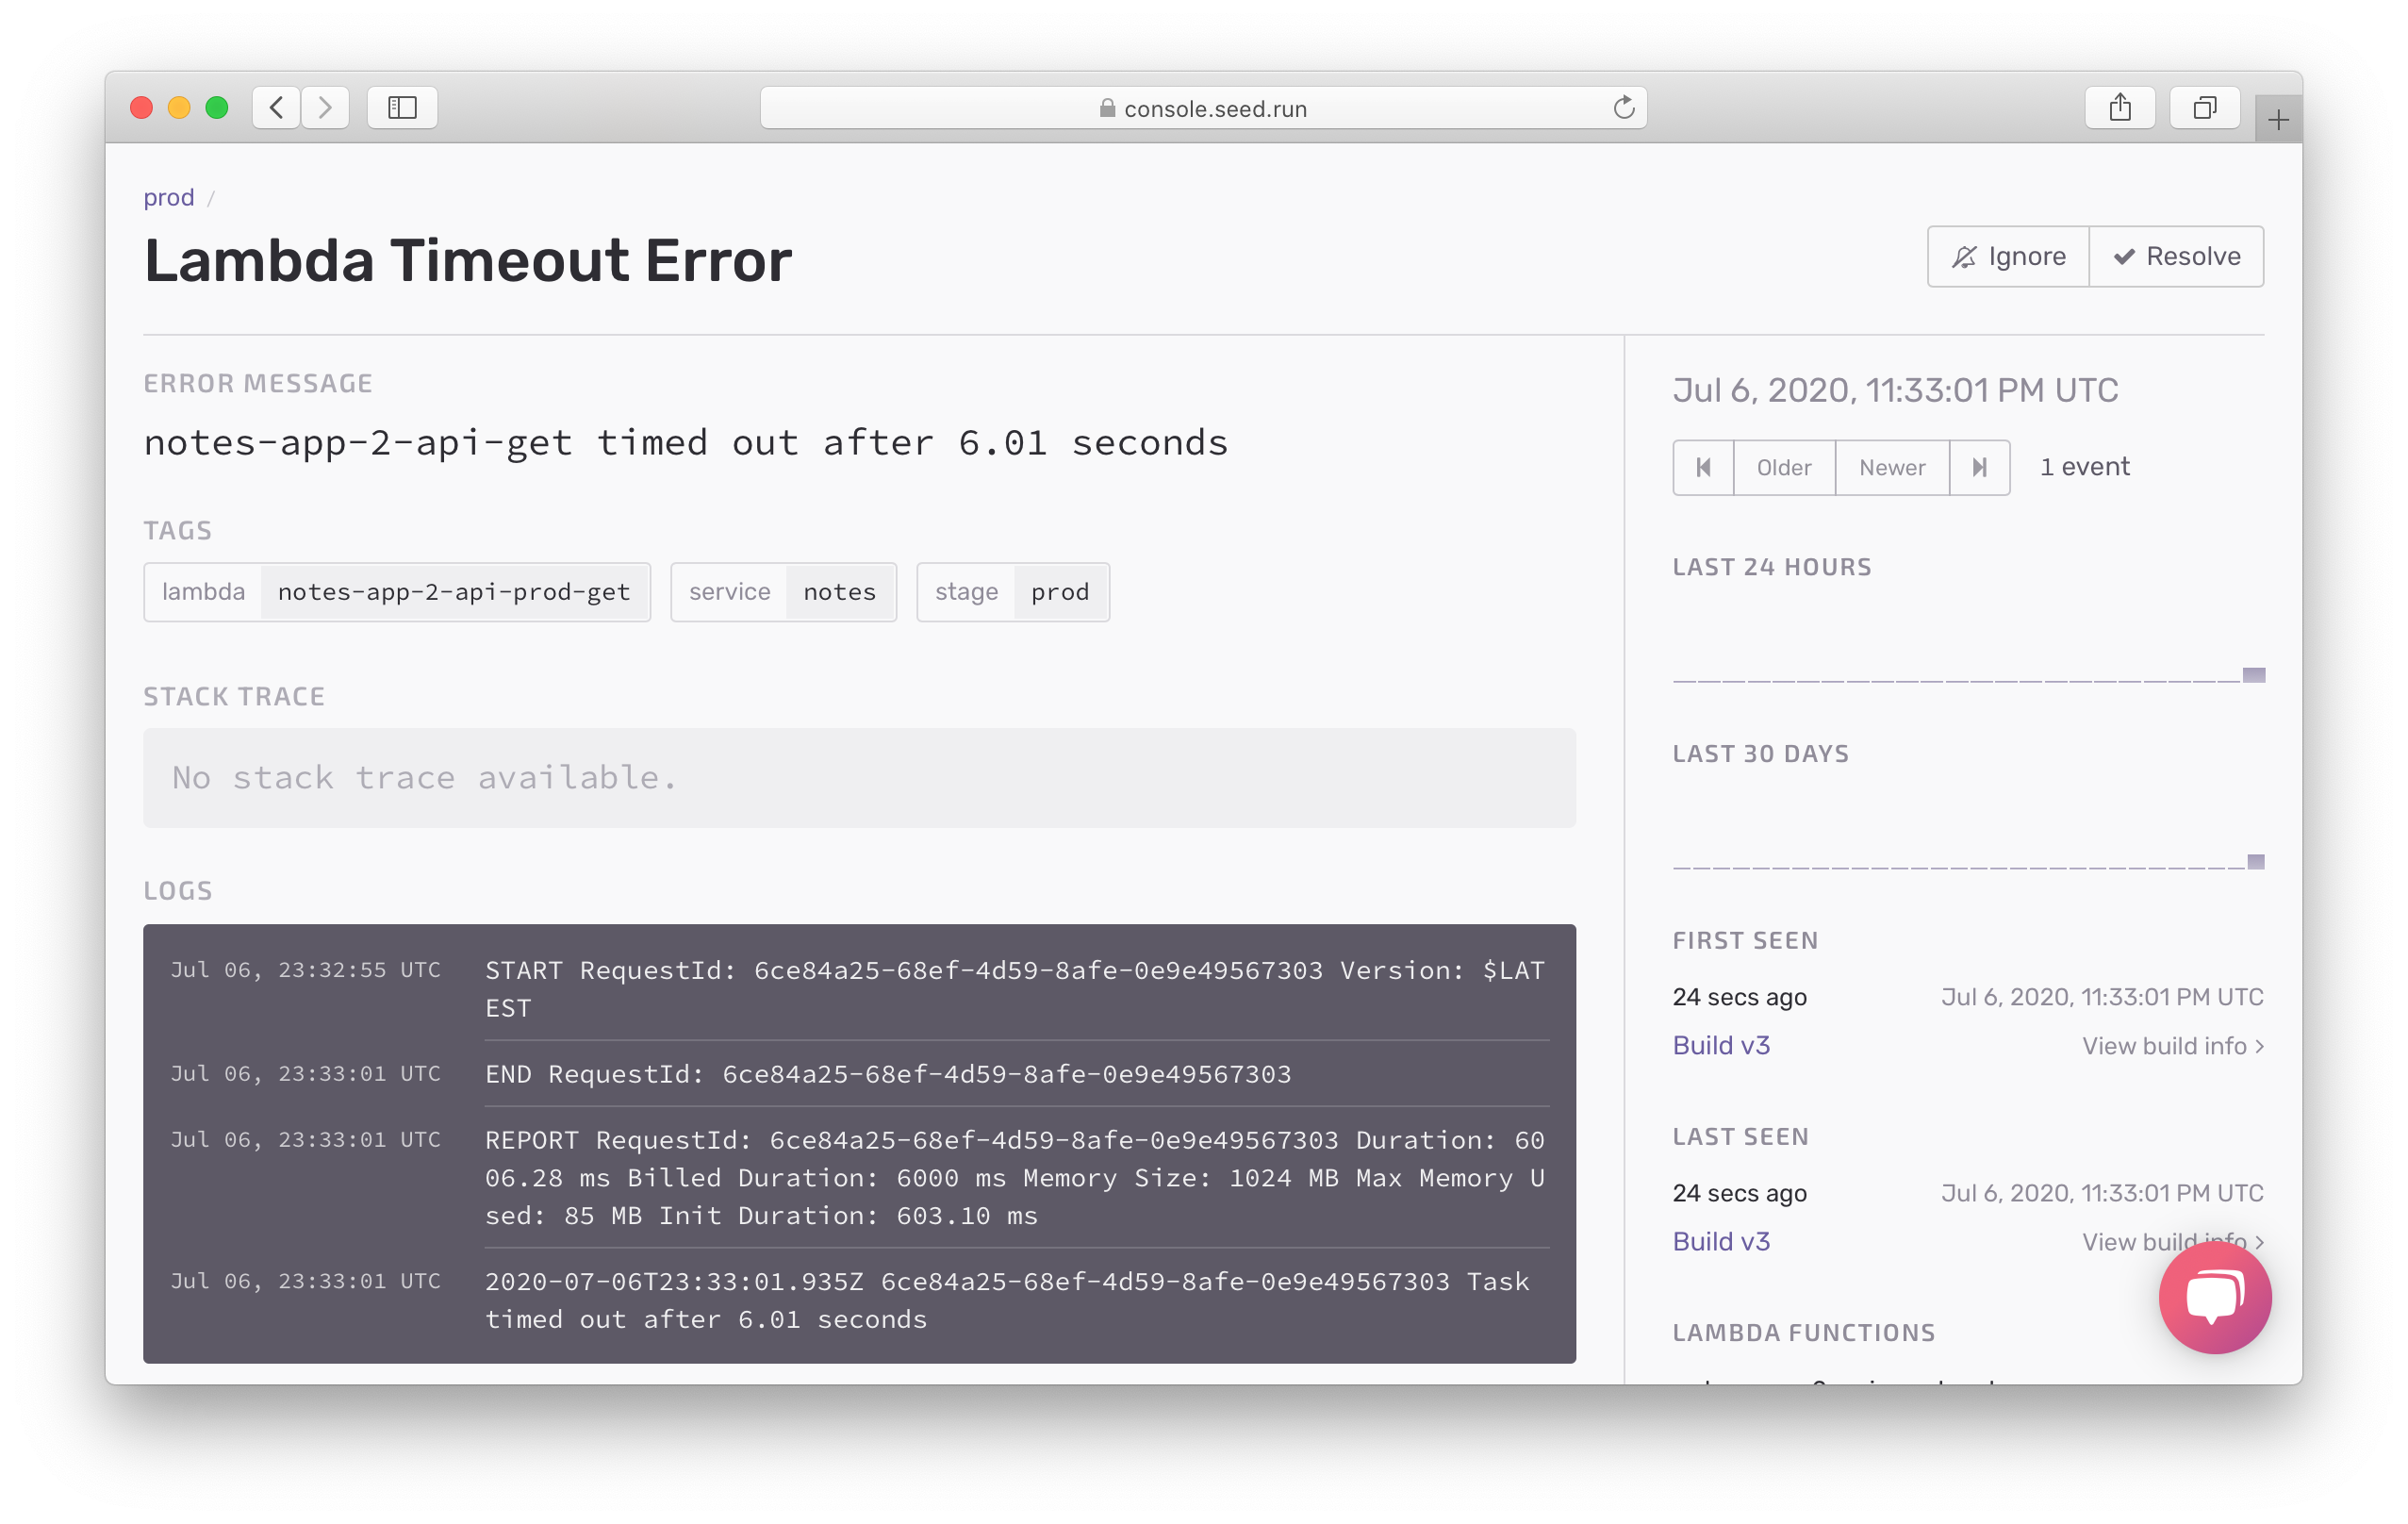 Timeout error details in Seed